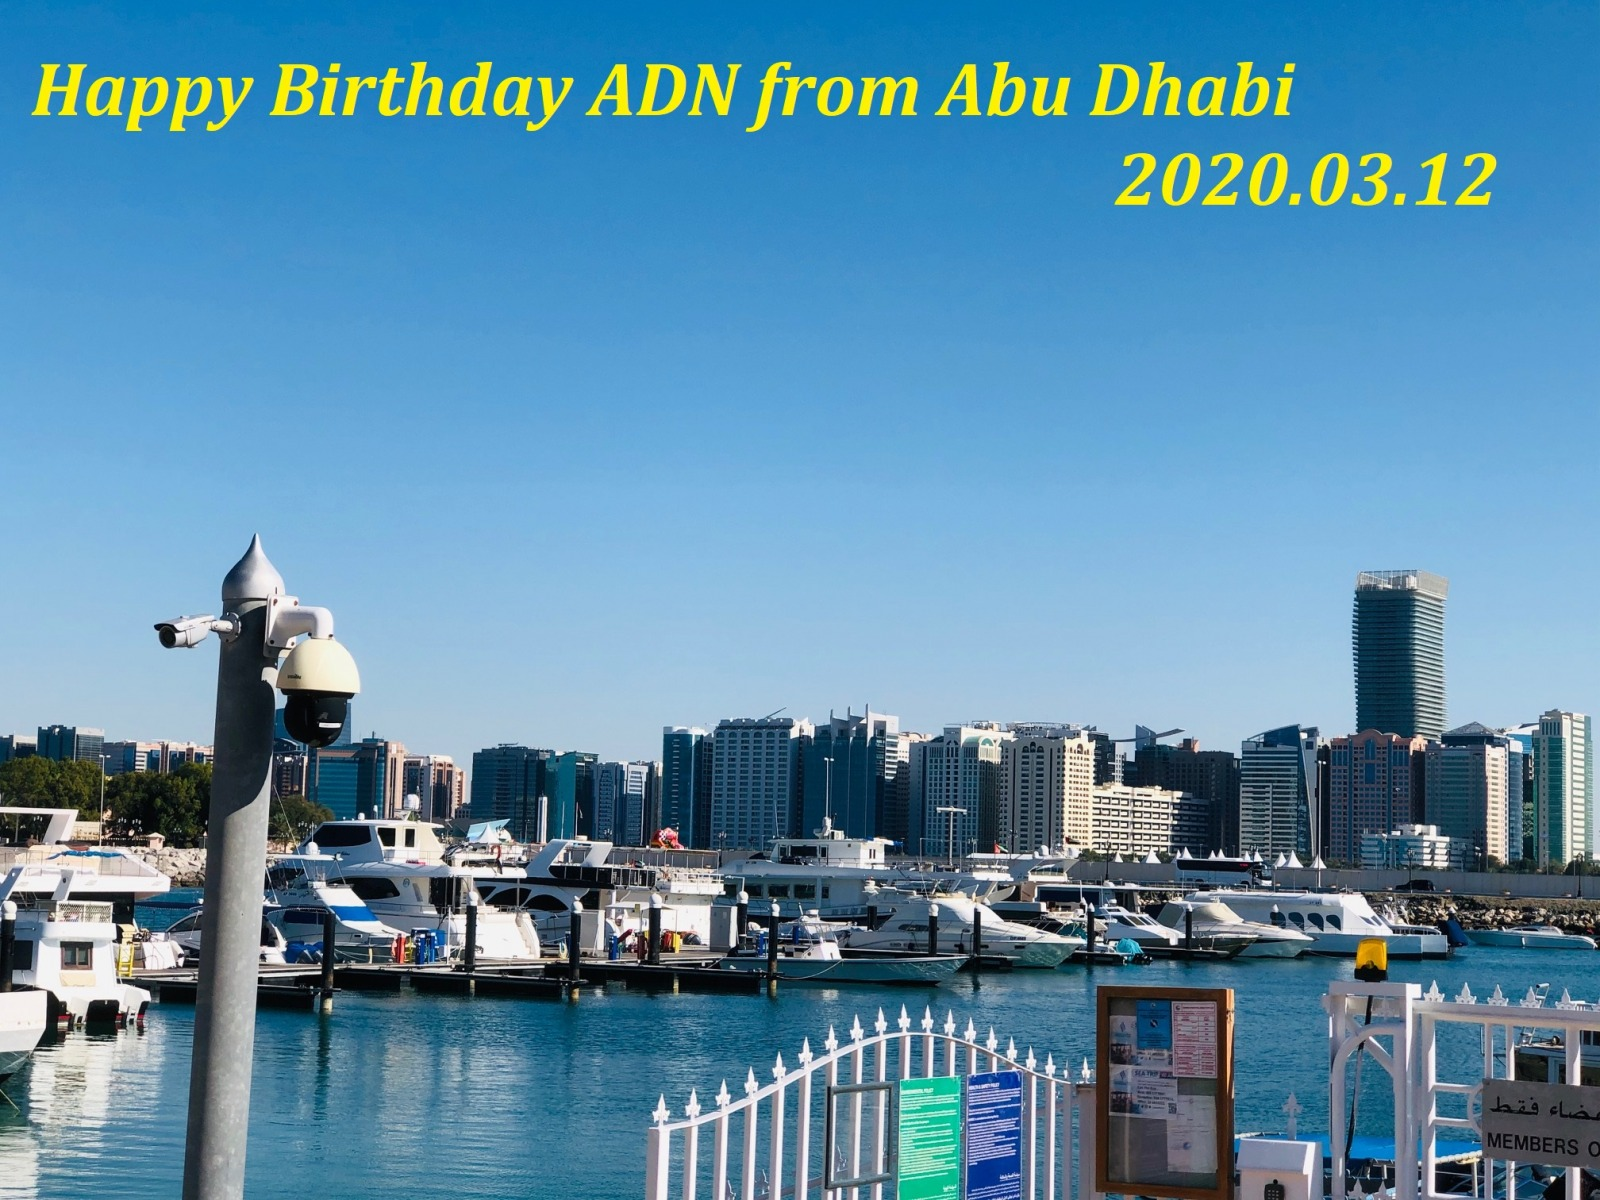 Birthday Wishes from Abu Dhabi